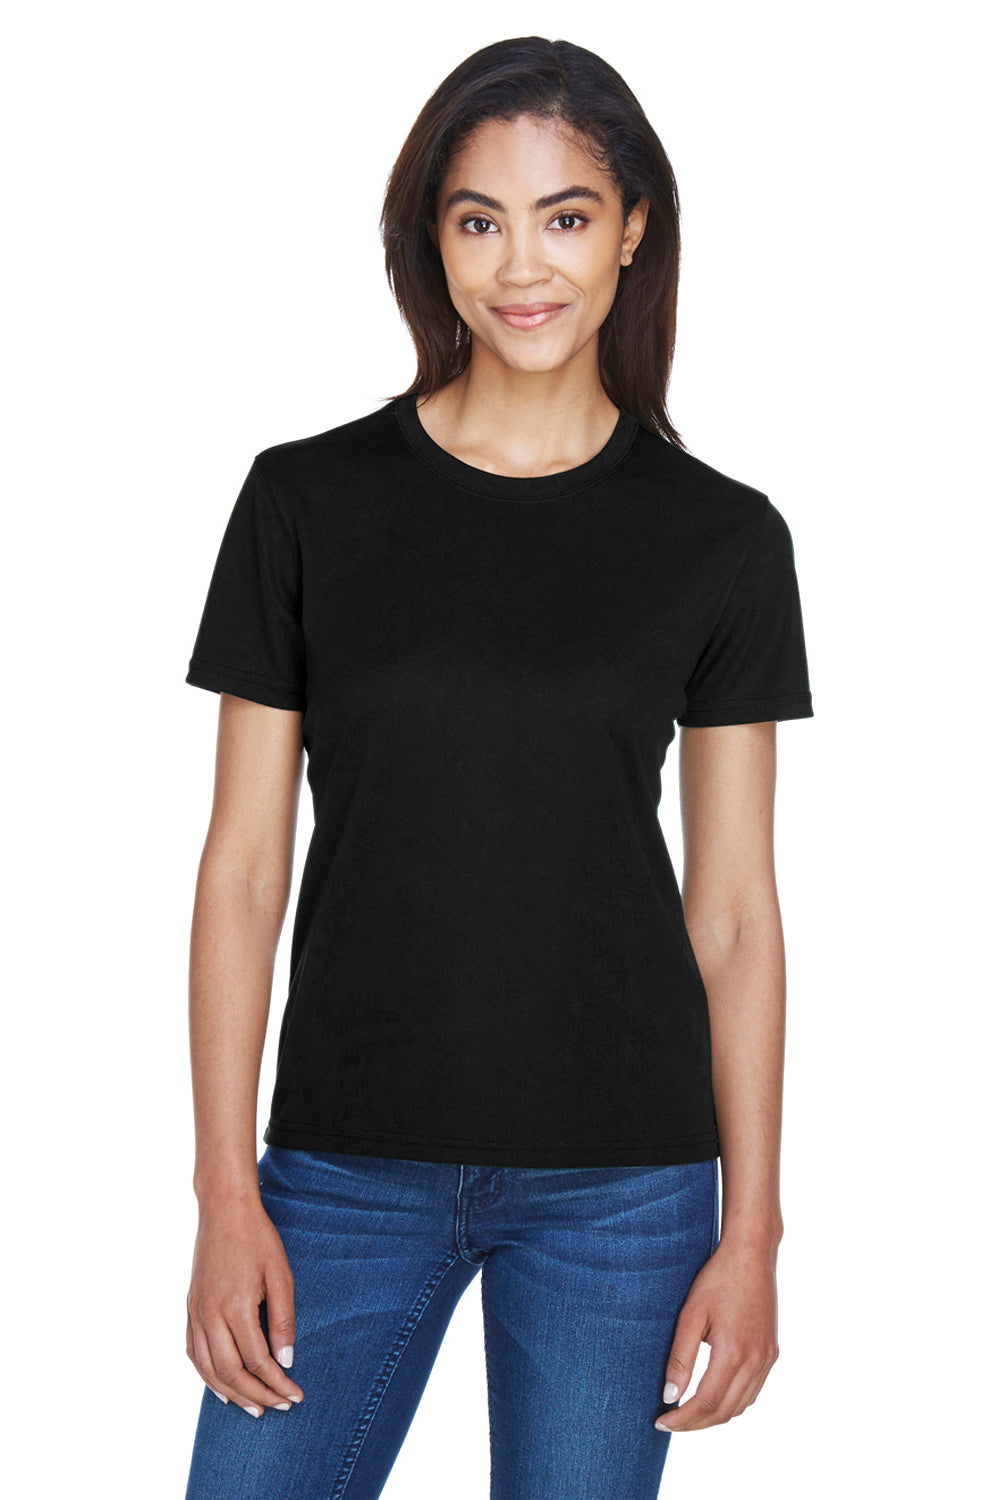 Core 365 78182 Womens Pace Performance Moisture Wicking Short Sleeve Crewneck T-Shirt Black Front